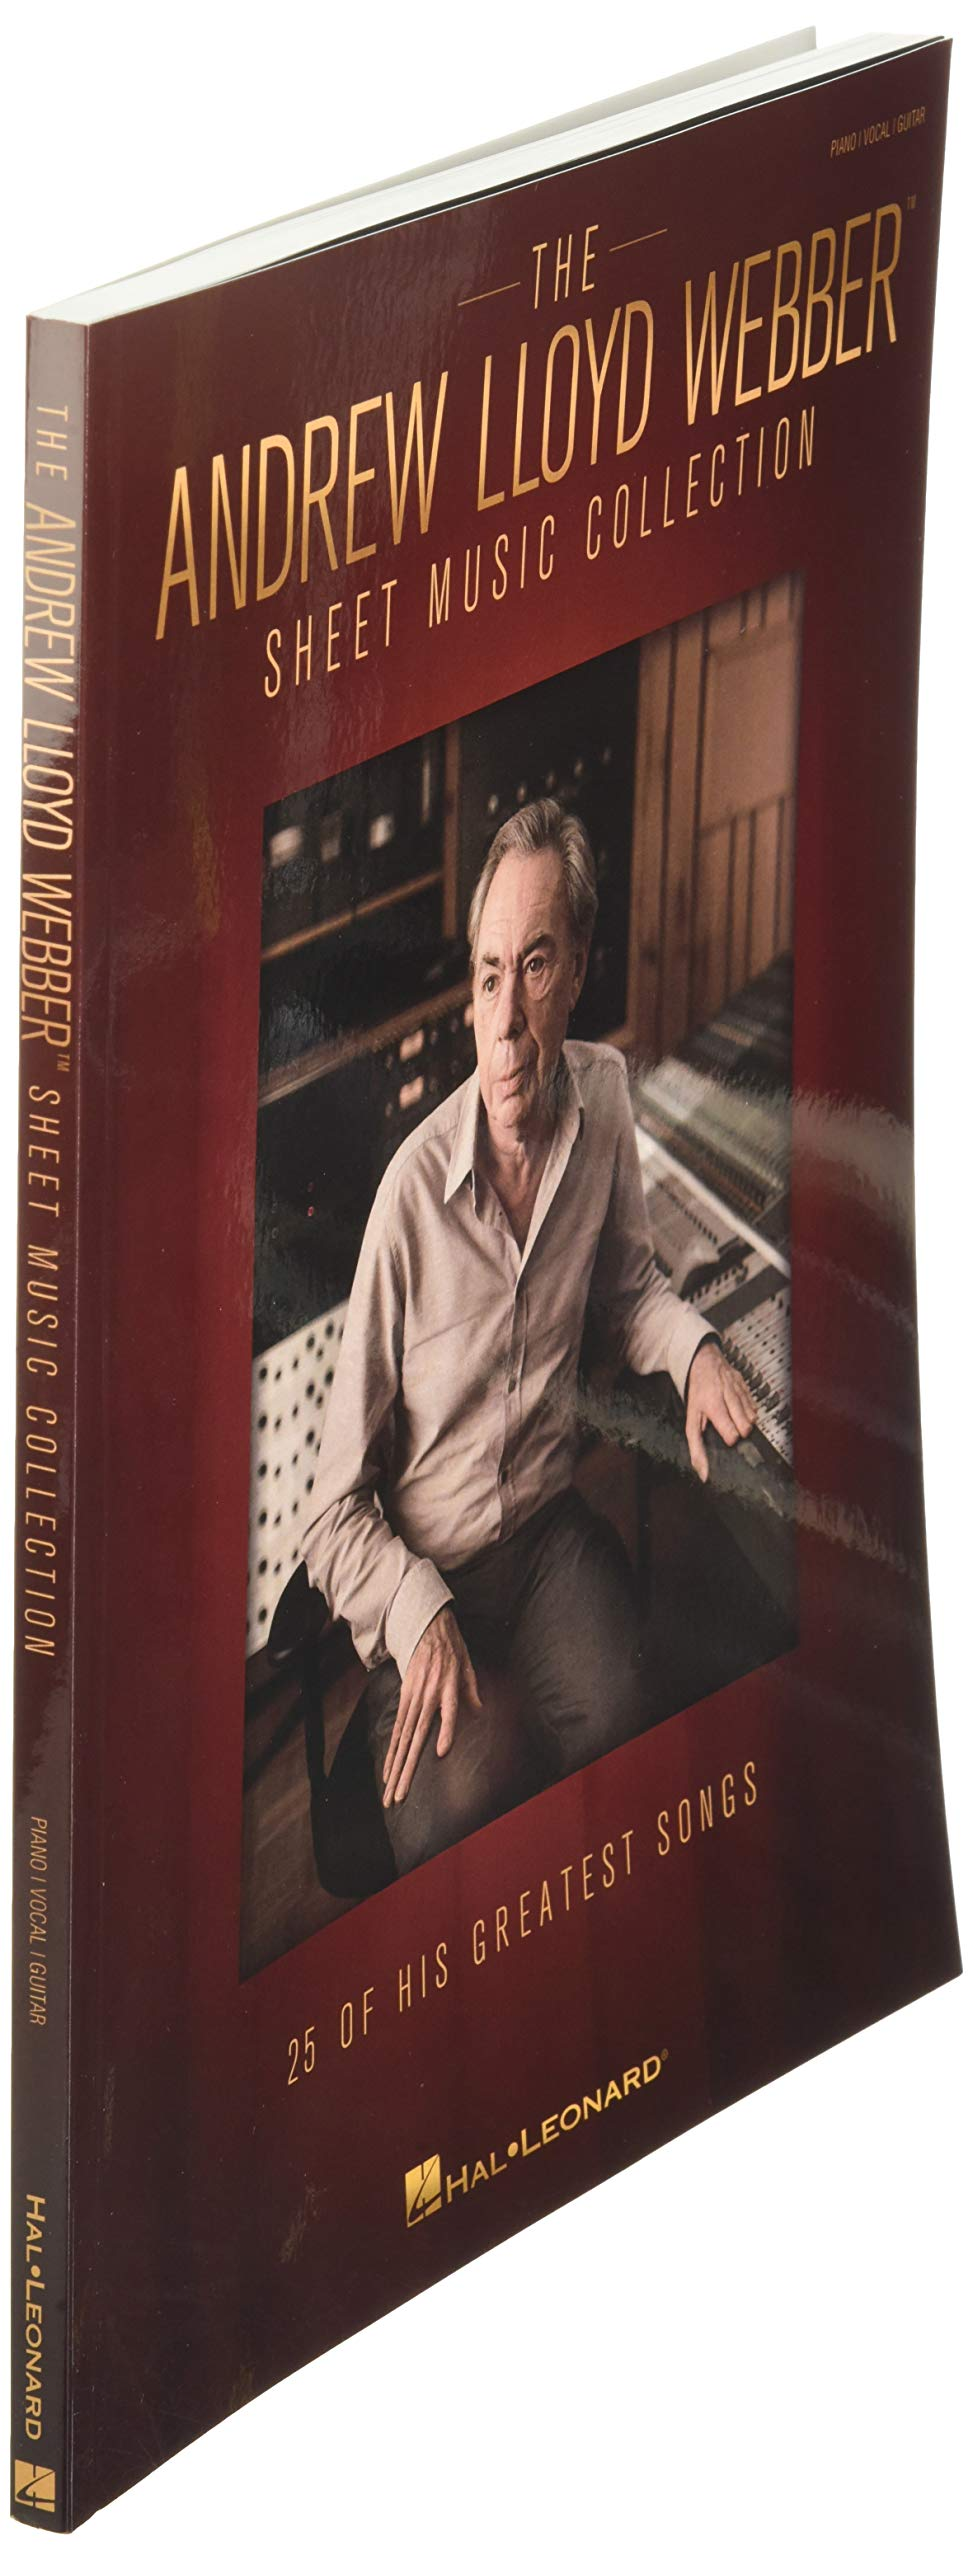 The Andrew Lloyd Webber Sheet Music Collection 25 Of His Greatest Songs Piano Voix Gu Lloyd Webber Andrew 0888680700287 Amazon Com Books